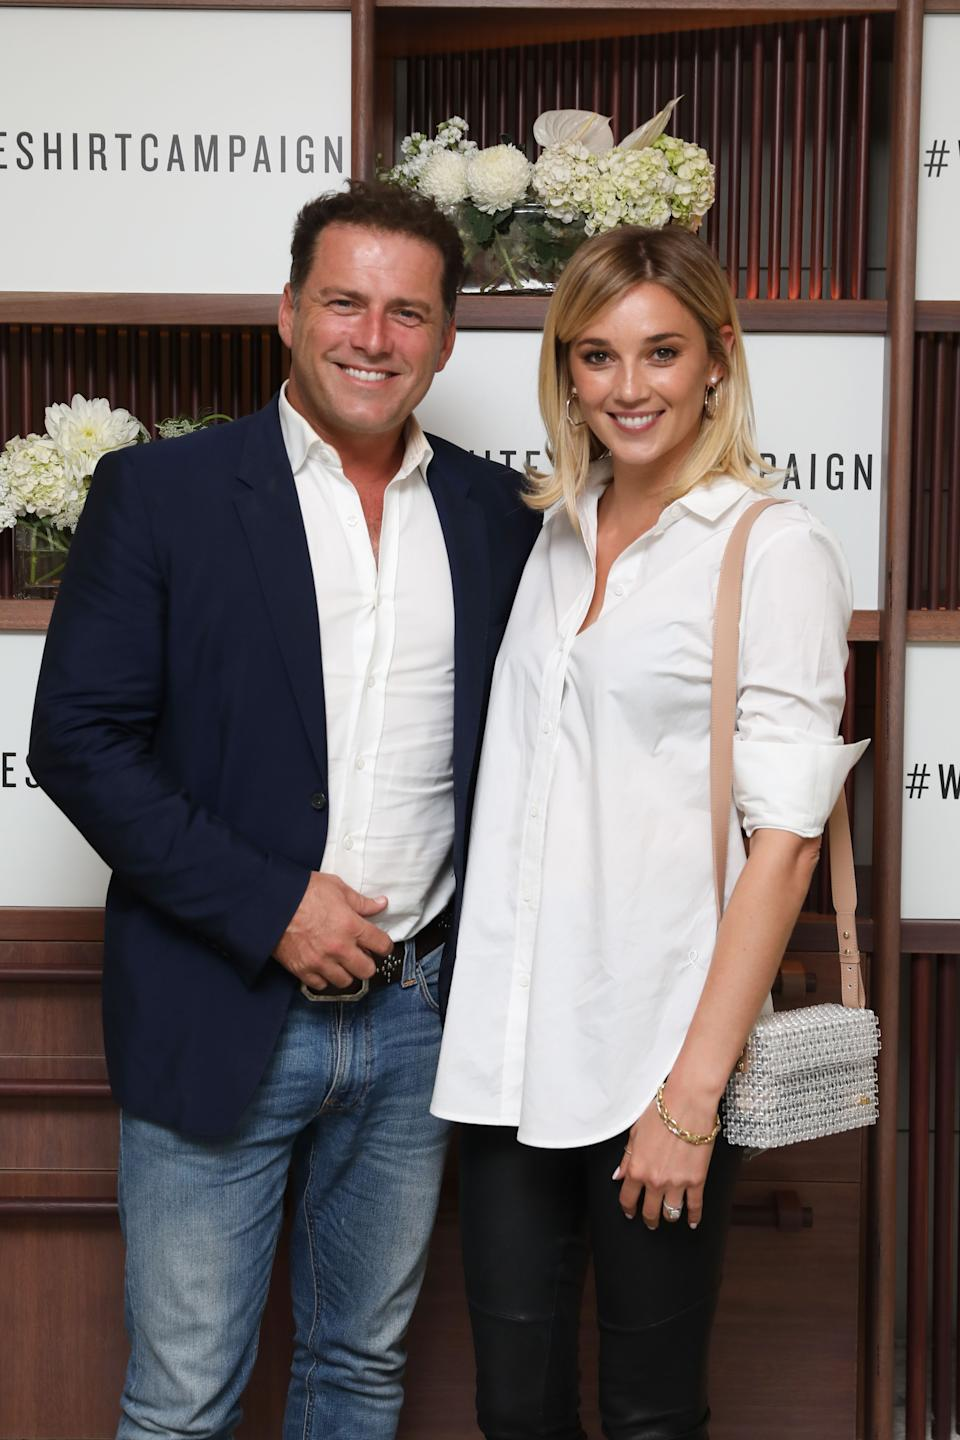 Karl Stefanovic and Jasmine Yarbrough attend the Witchery x OCRF White Shirt Campaign Launch on April 4, 2018